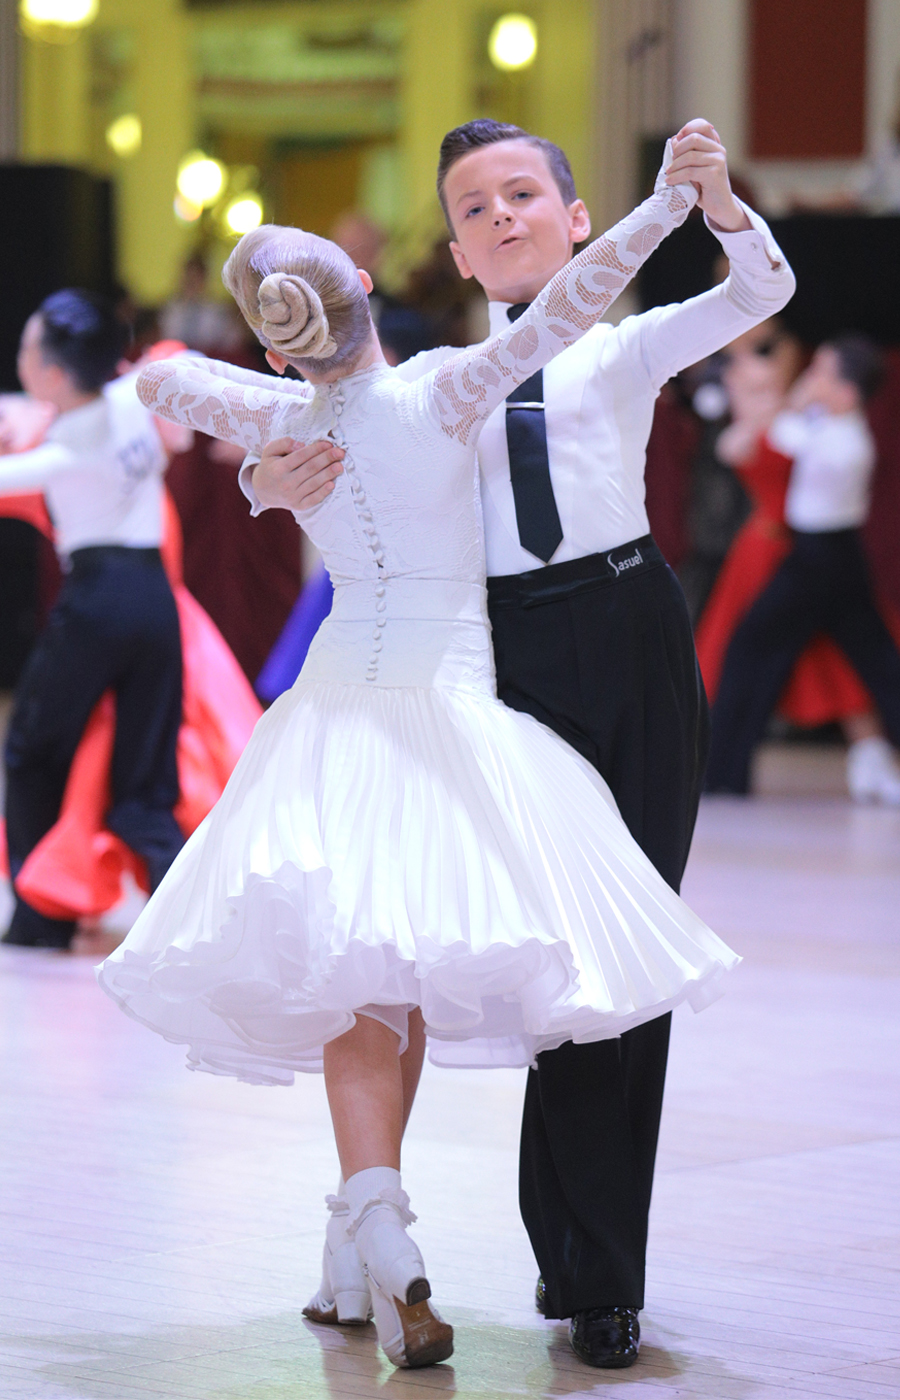 Juvenile white ballroom dress